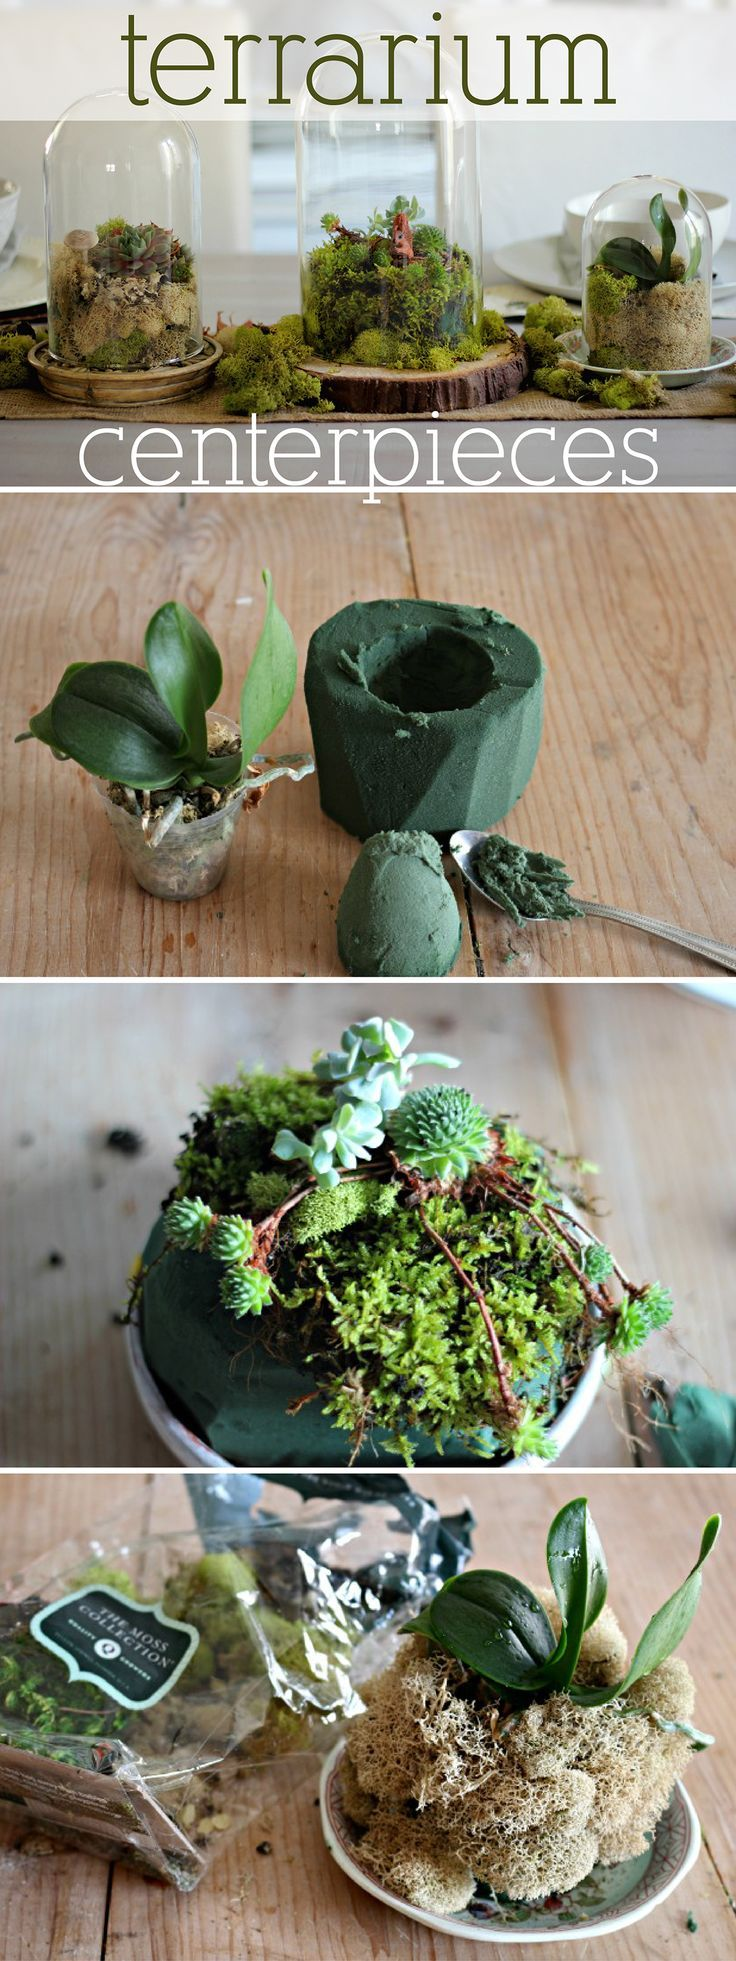 Terrarium centerpieces are great for any season. Best part is that they're easy to make and last a long, long time. www.ehow.com/...